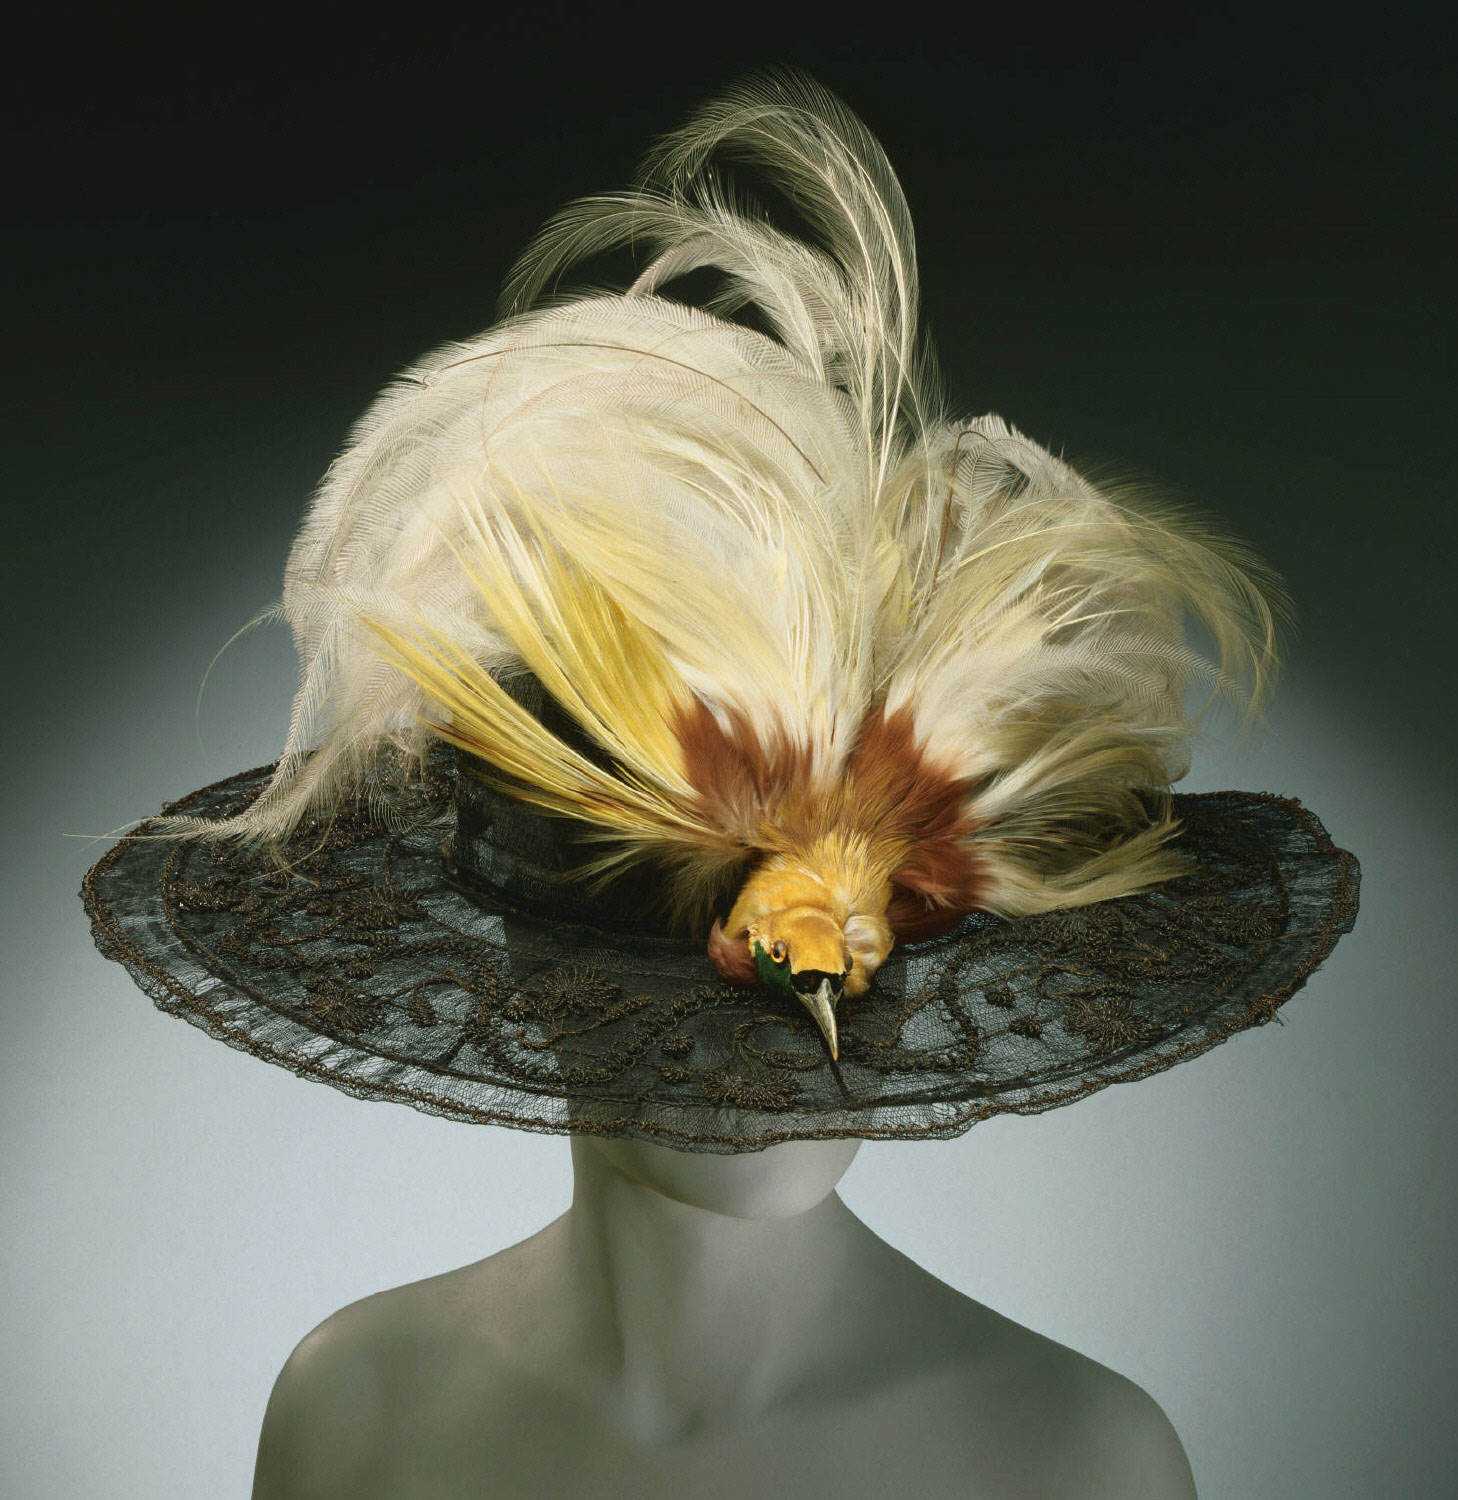 Cora Pearl's Plumed Hat